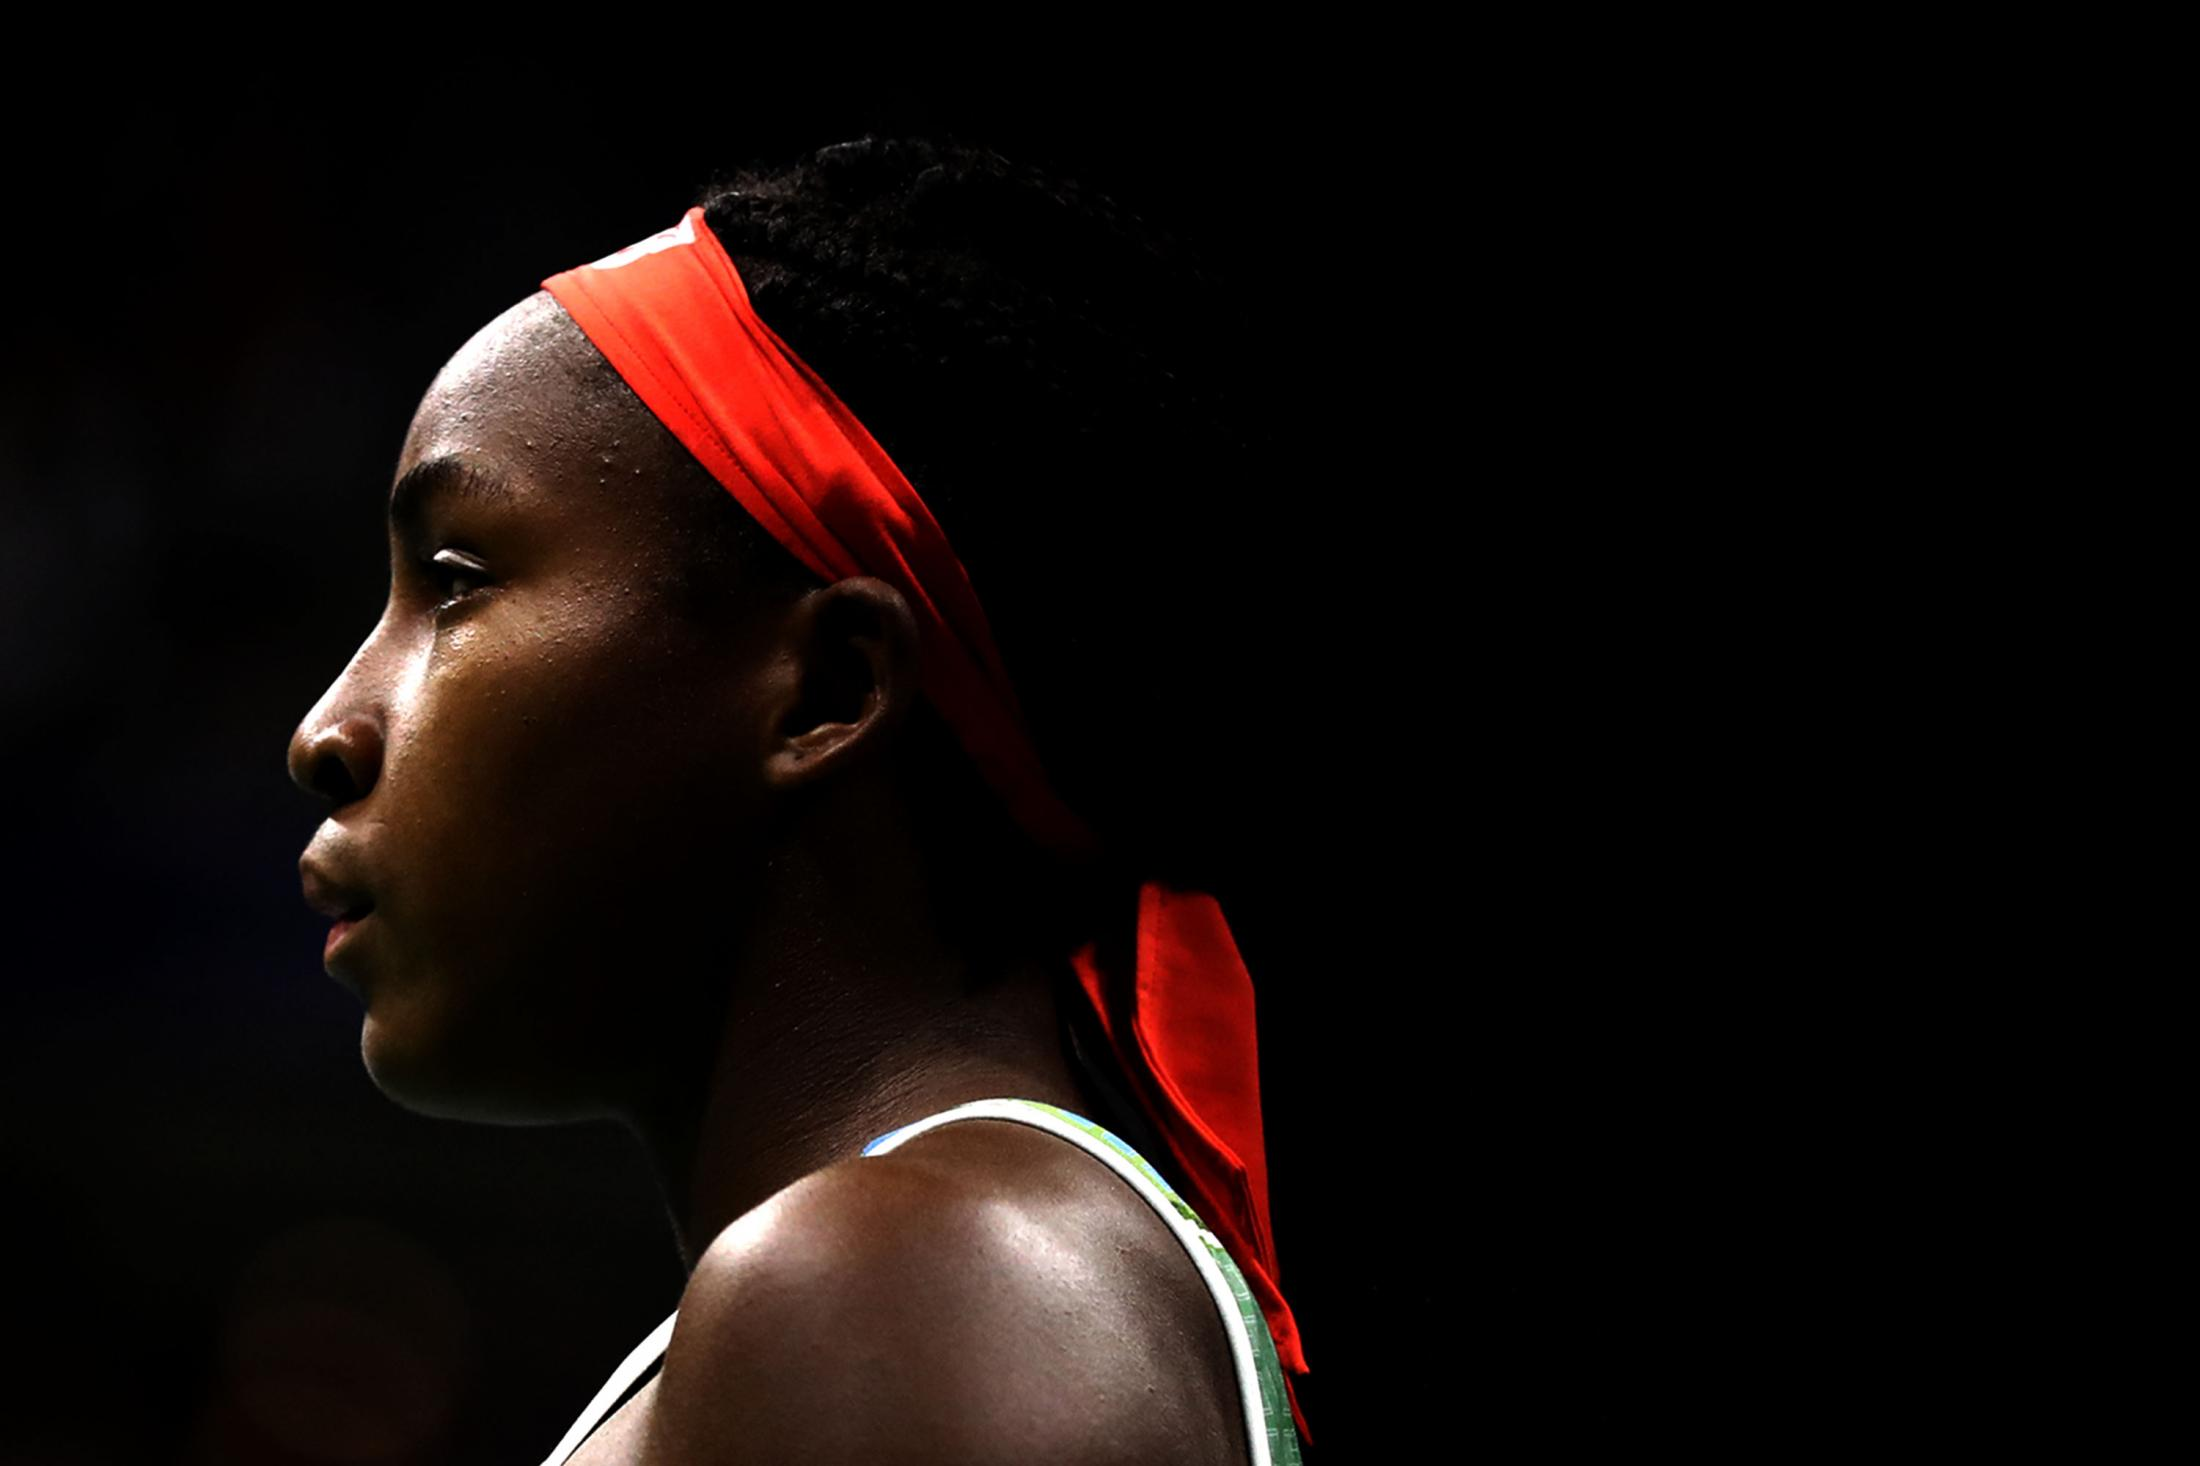 NEW YORK, NEW YORK - AUGUST 31: Cori Gauff of the United States looks on during her Women's Singles third round match against Naomi Osaka of Japan on day six of the 2019 US Open at the USTA Billie Jean King National Tennis Center on August 31, 2019 in Queens borough of New York City. (Photo by Katharine Lotze/Getty Images)